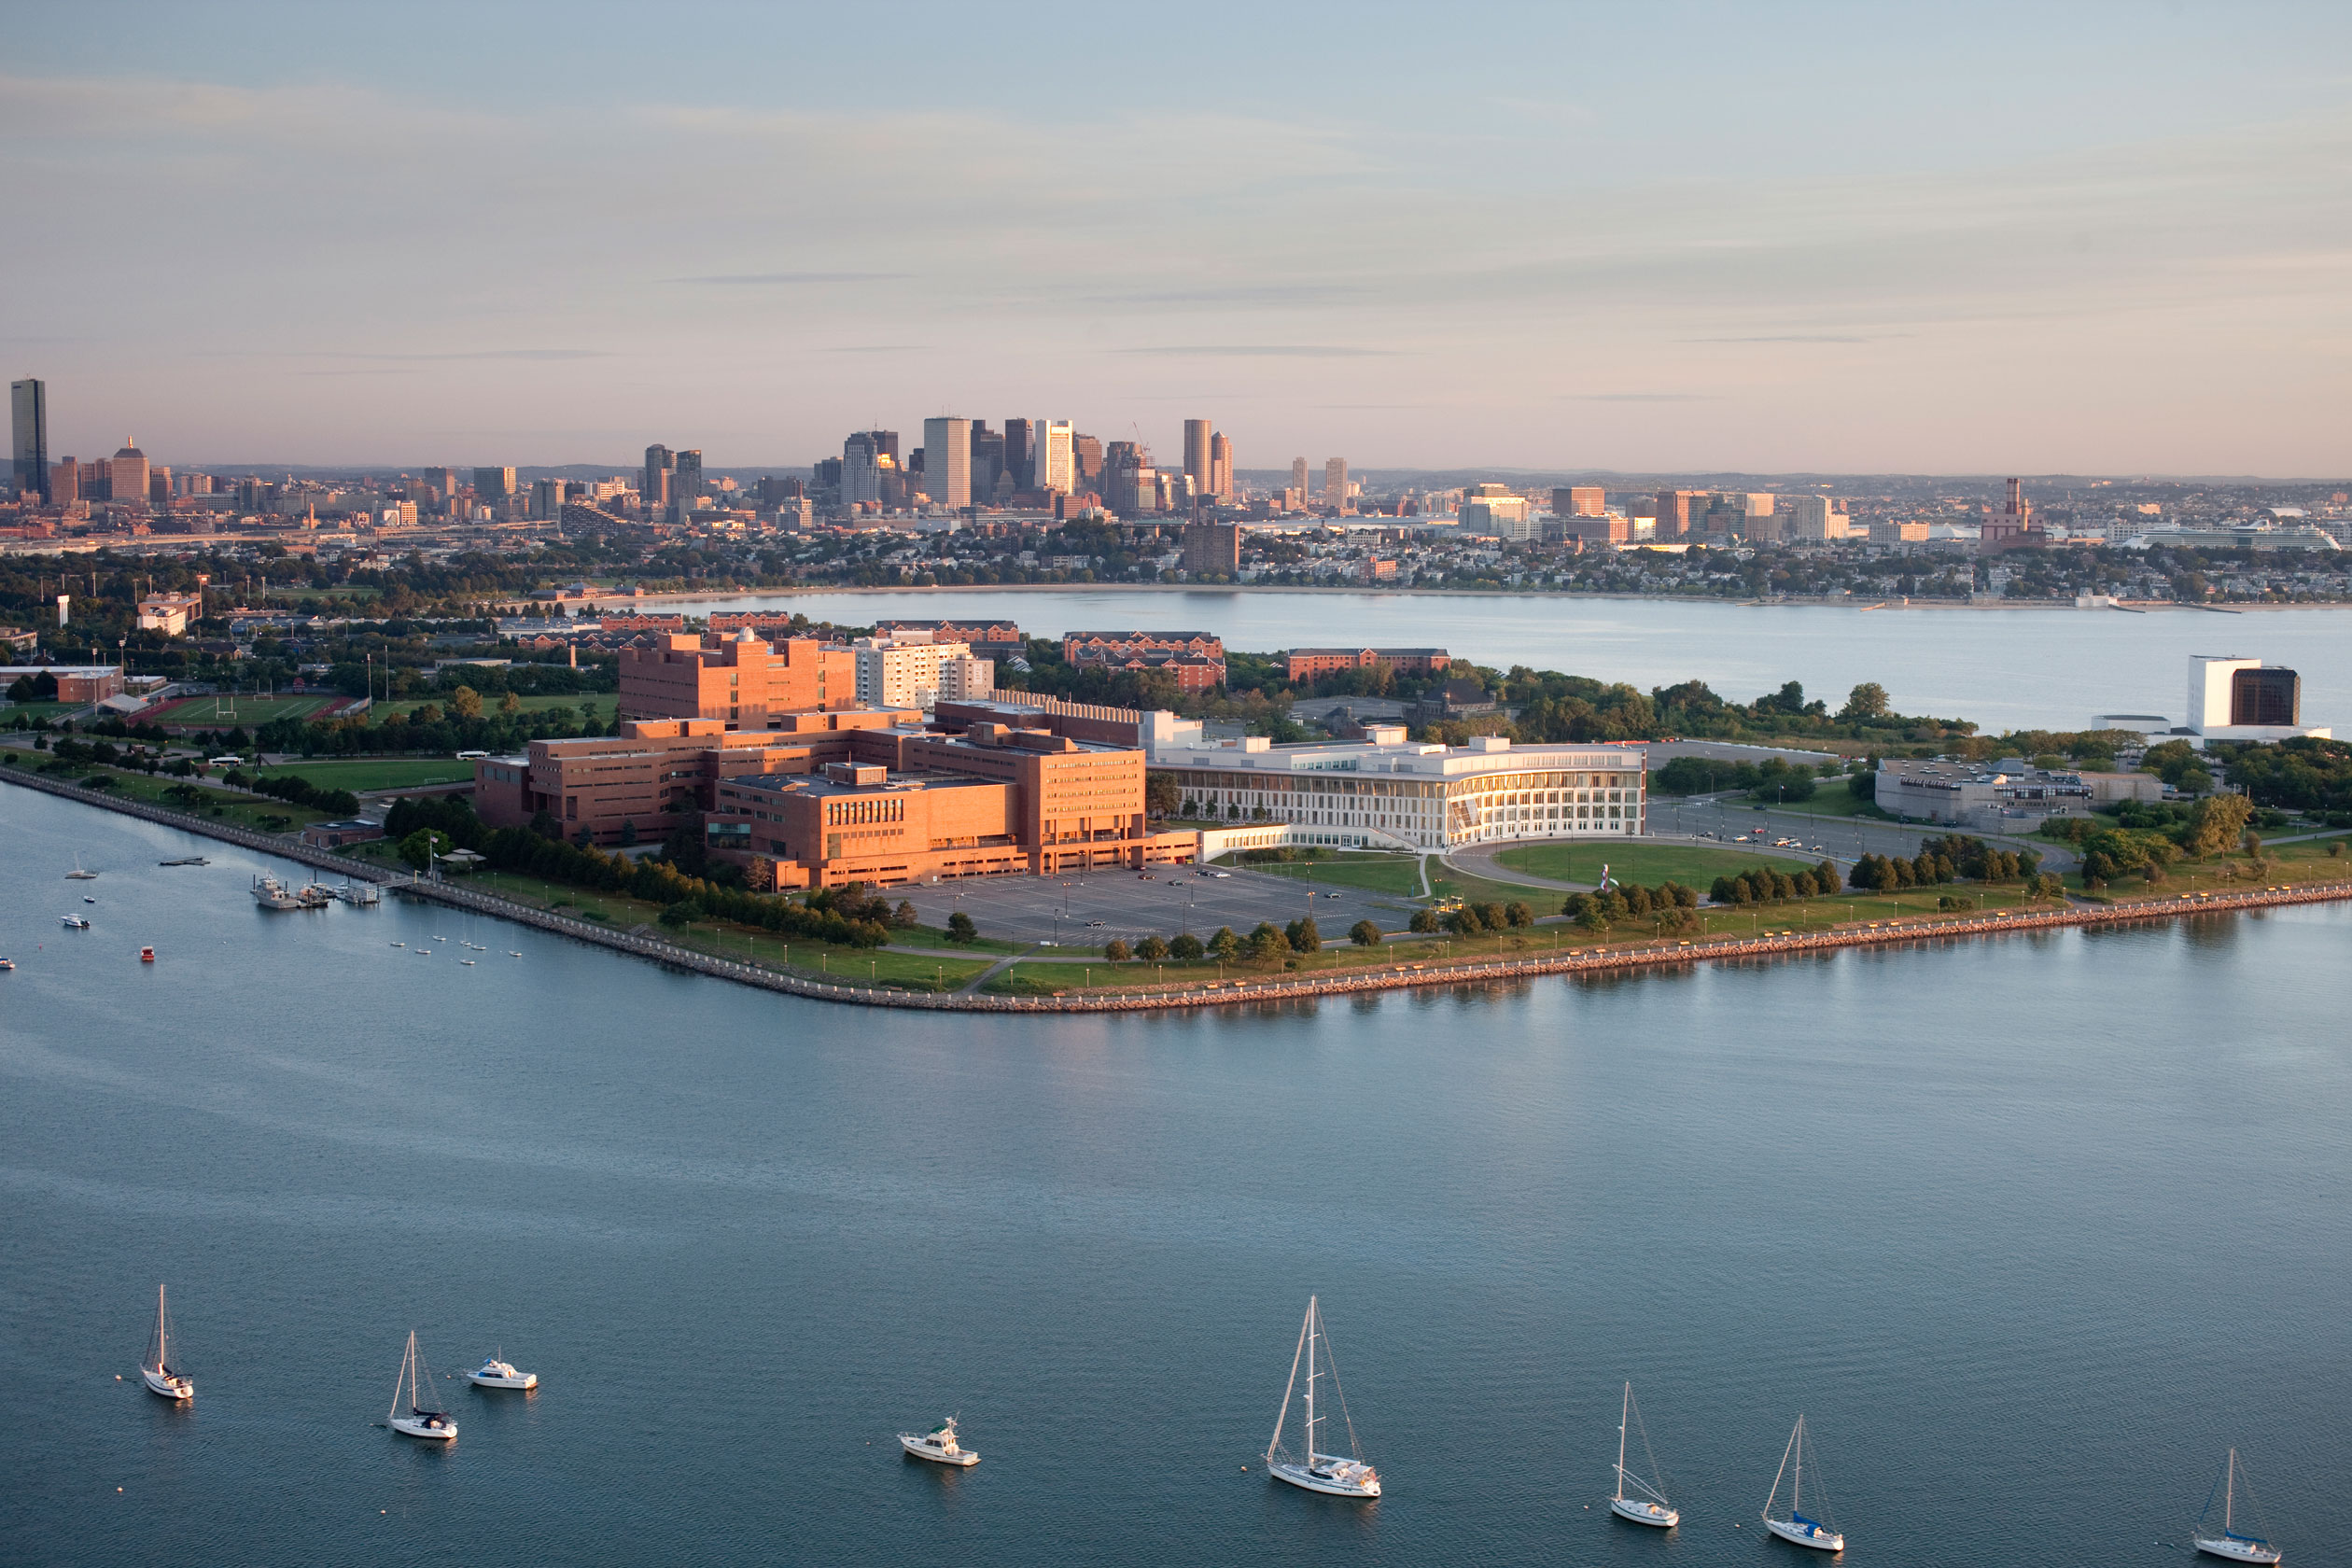 UMass Boston's School for the Environment